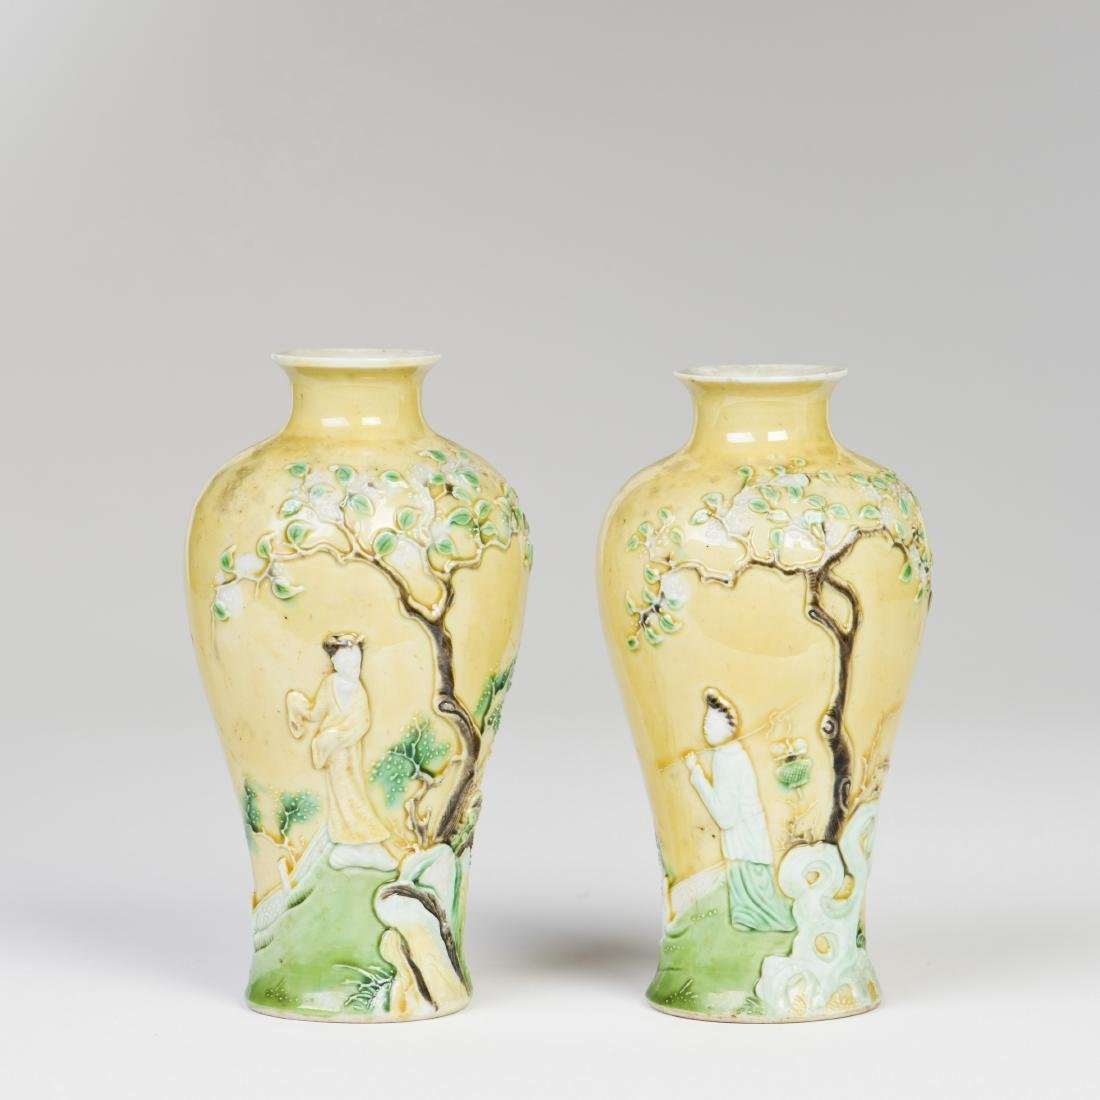 A PAIR OF 'FIGURE' VASES